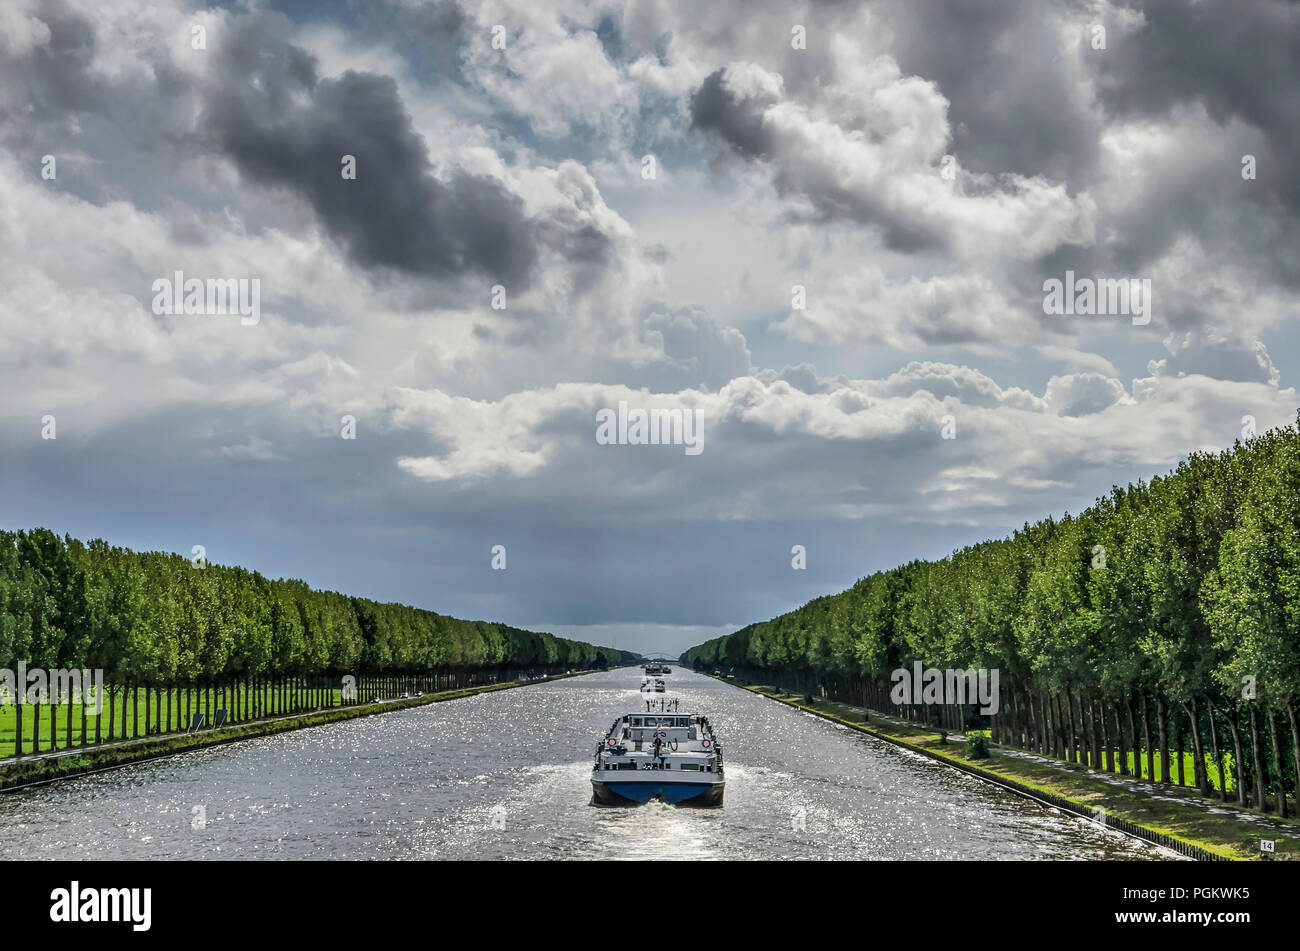 Central perspective of the long and straight Amsterdam-Rhine canal just south of Amsterdam, with inland barges and long lines of trees under a dramati - Stock Image